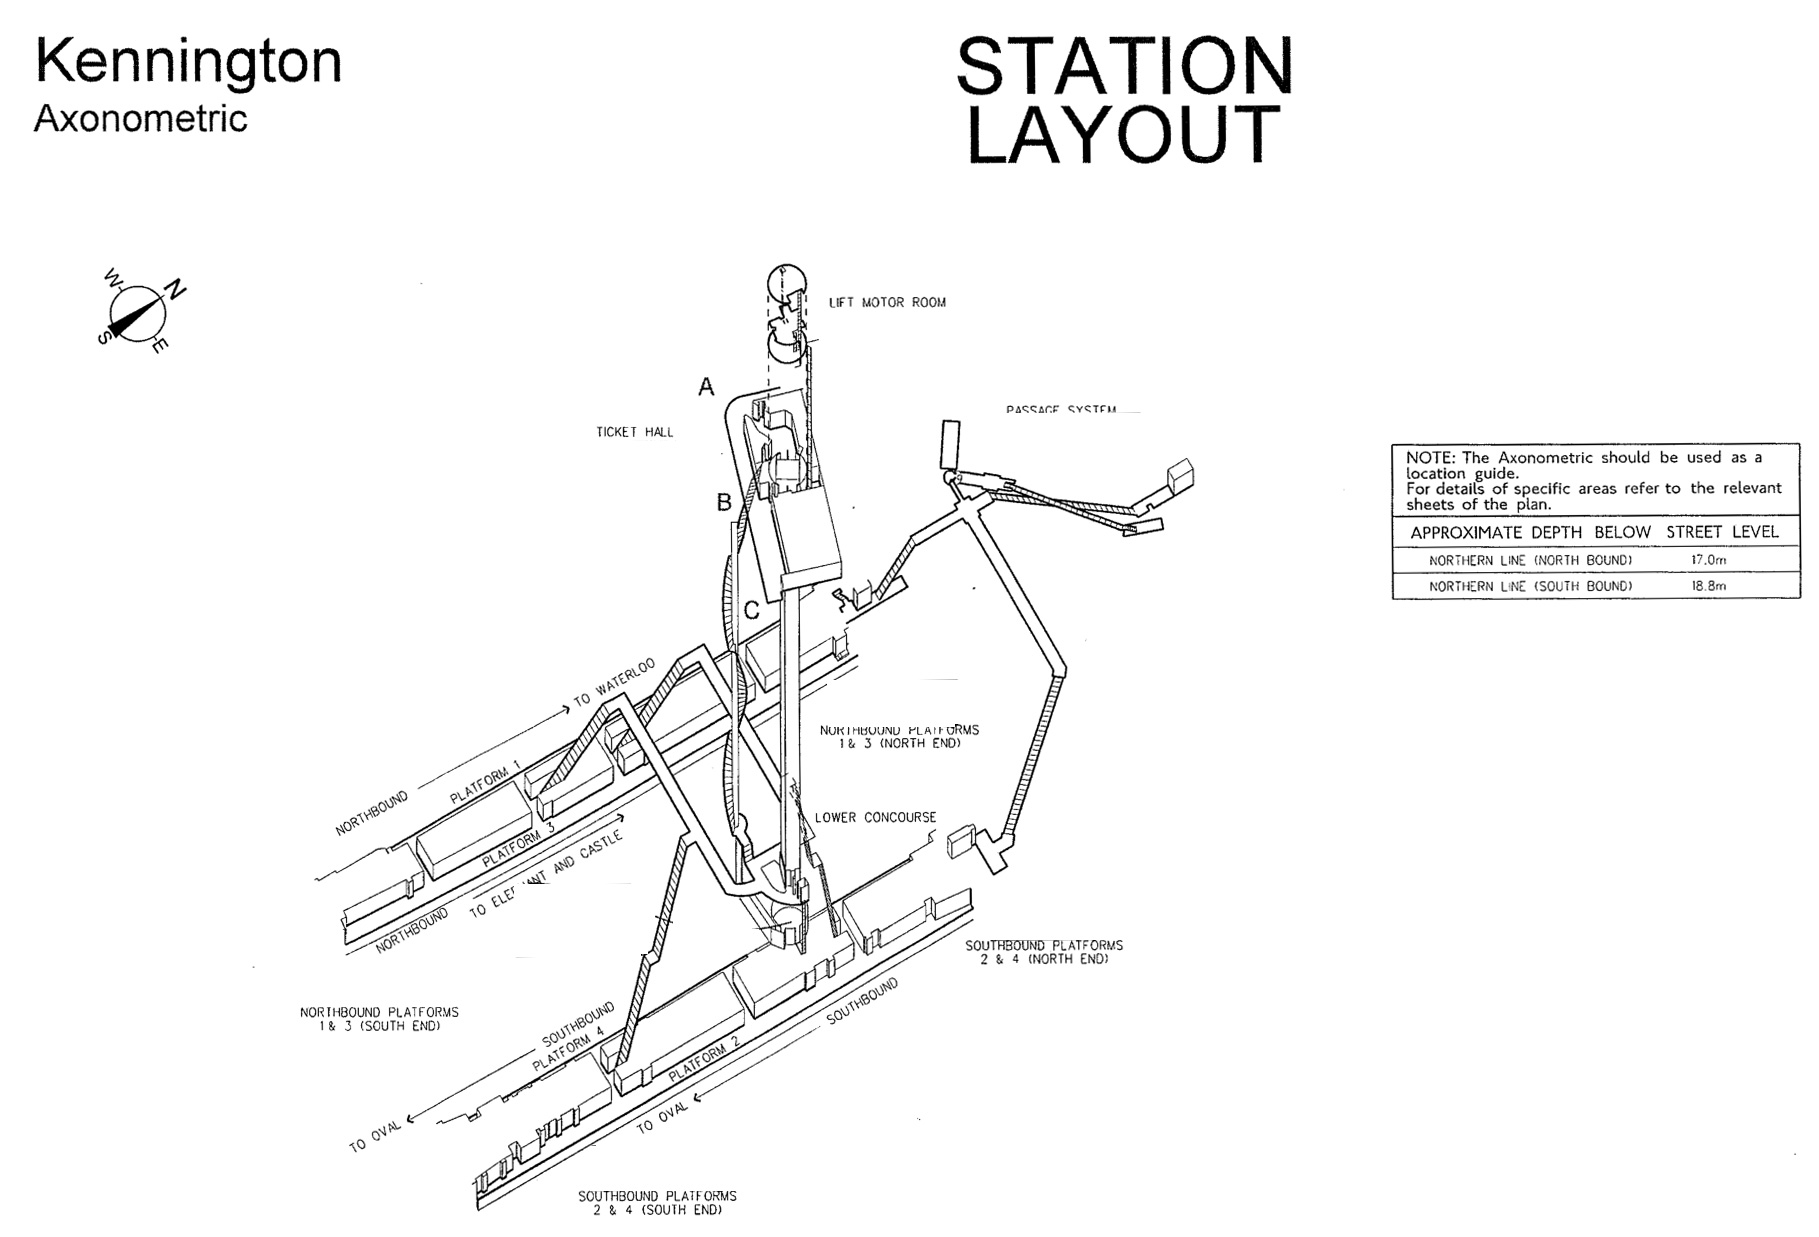 diagramme-3d-station-metro-londres-kennington-05